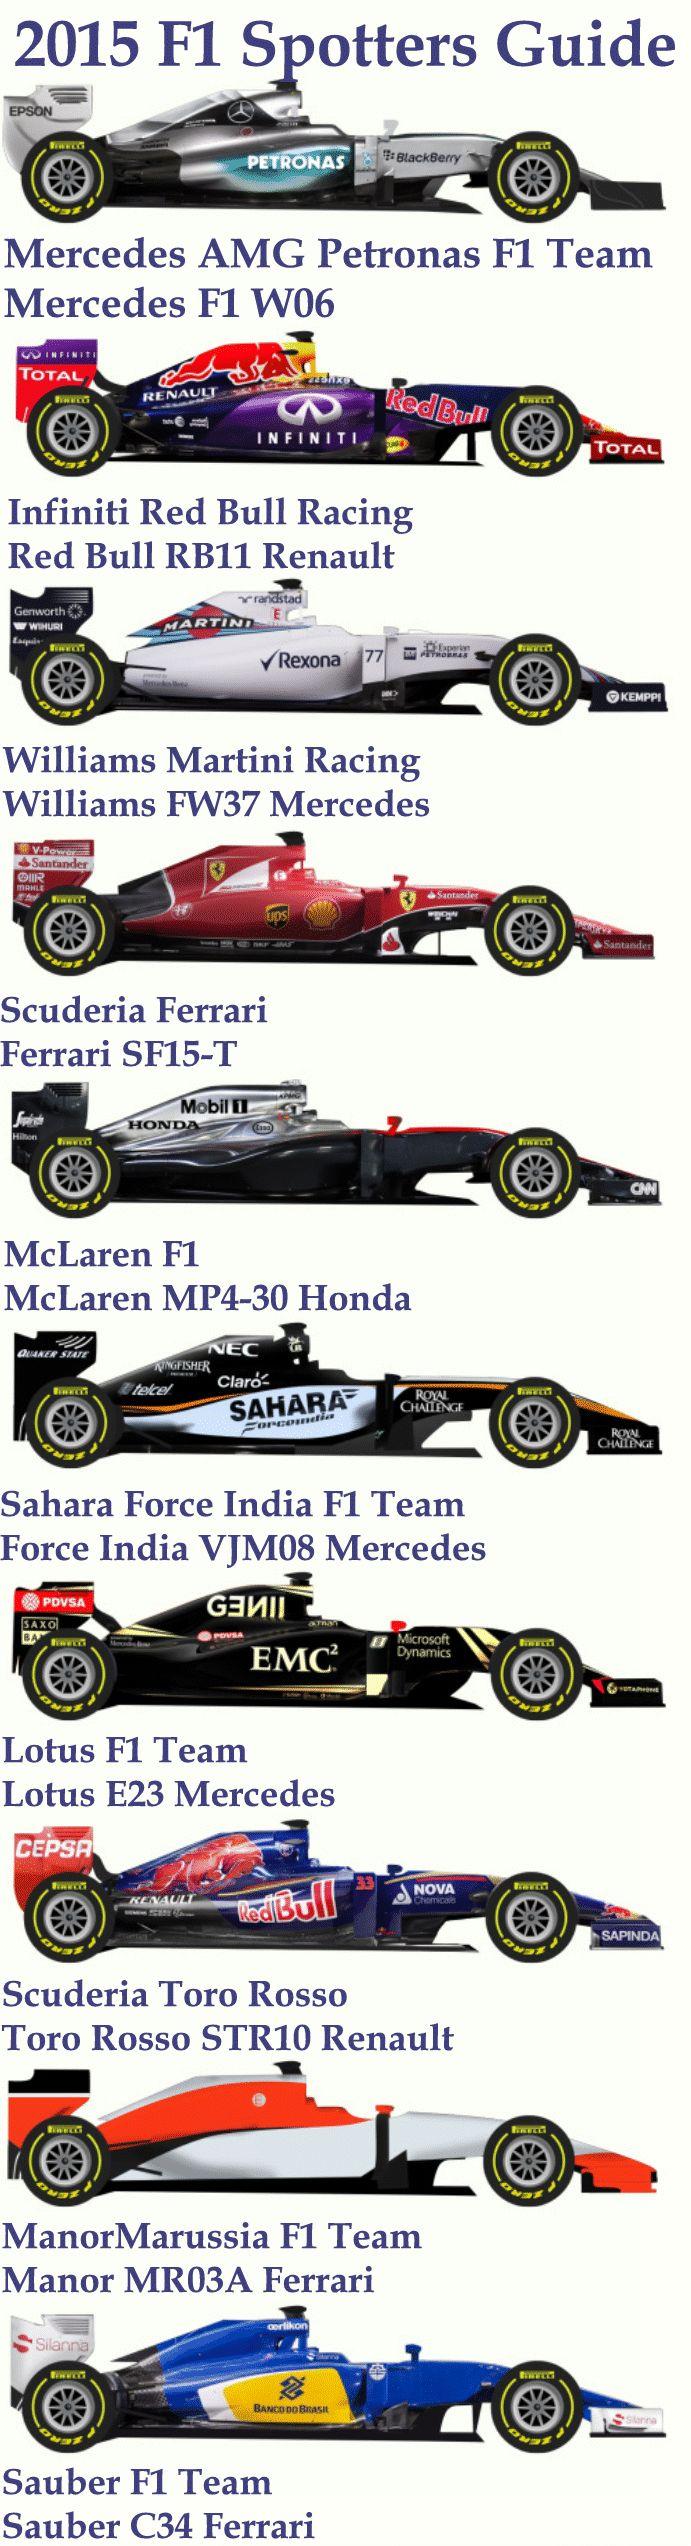 OK F1 Fans, I made this little gem! Enjoy it! 2015 F-1 Spotters Guide.